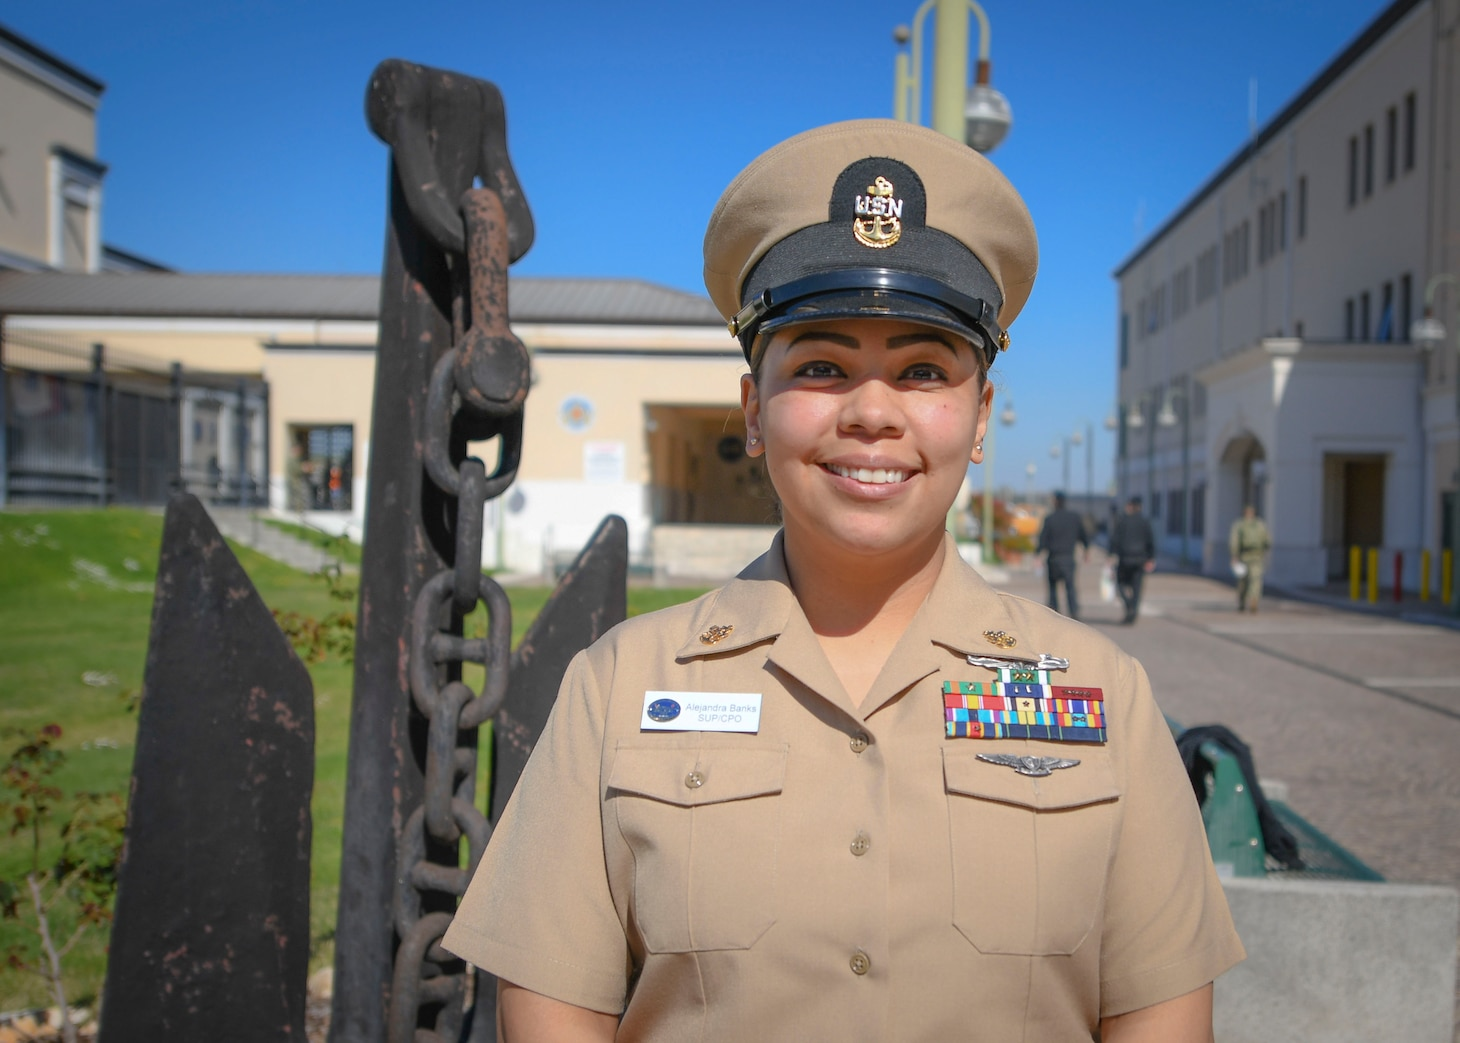 Chief Logistics Specialist Alejandra Banks, assigned to USS Mount Whitney (LCC 20), poses for a portrait on Naval Support Activity, Naples, Mar. 31, 2021, in celebration of the 128th birthday of the Chief Petty Officer ranks.